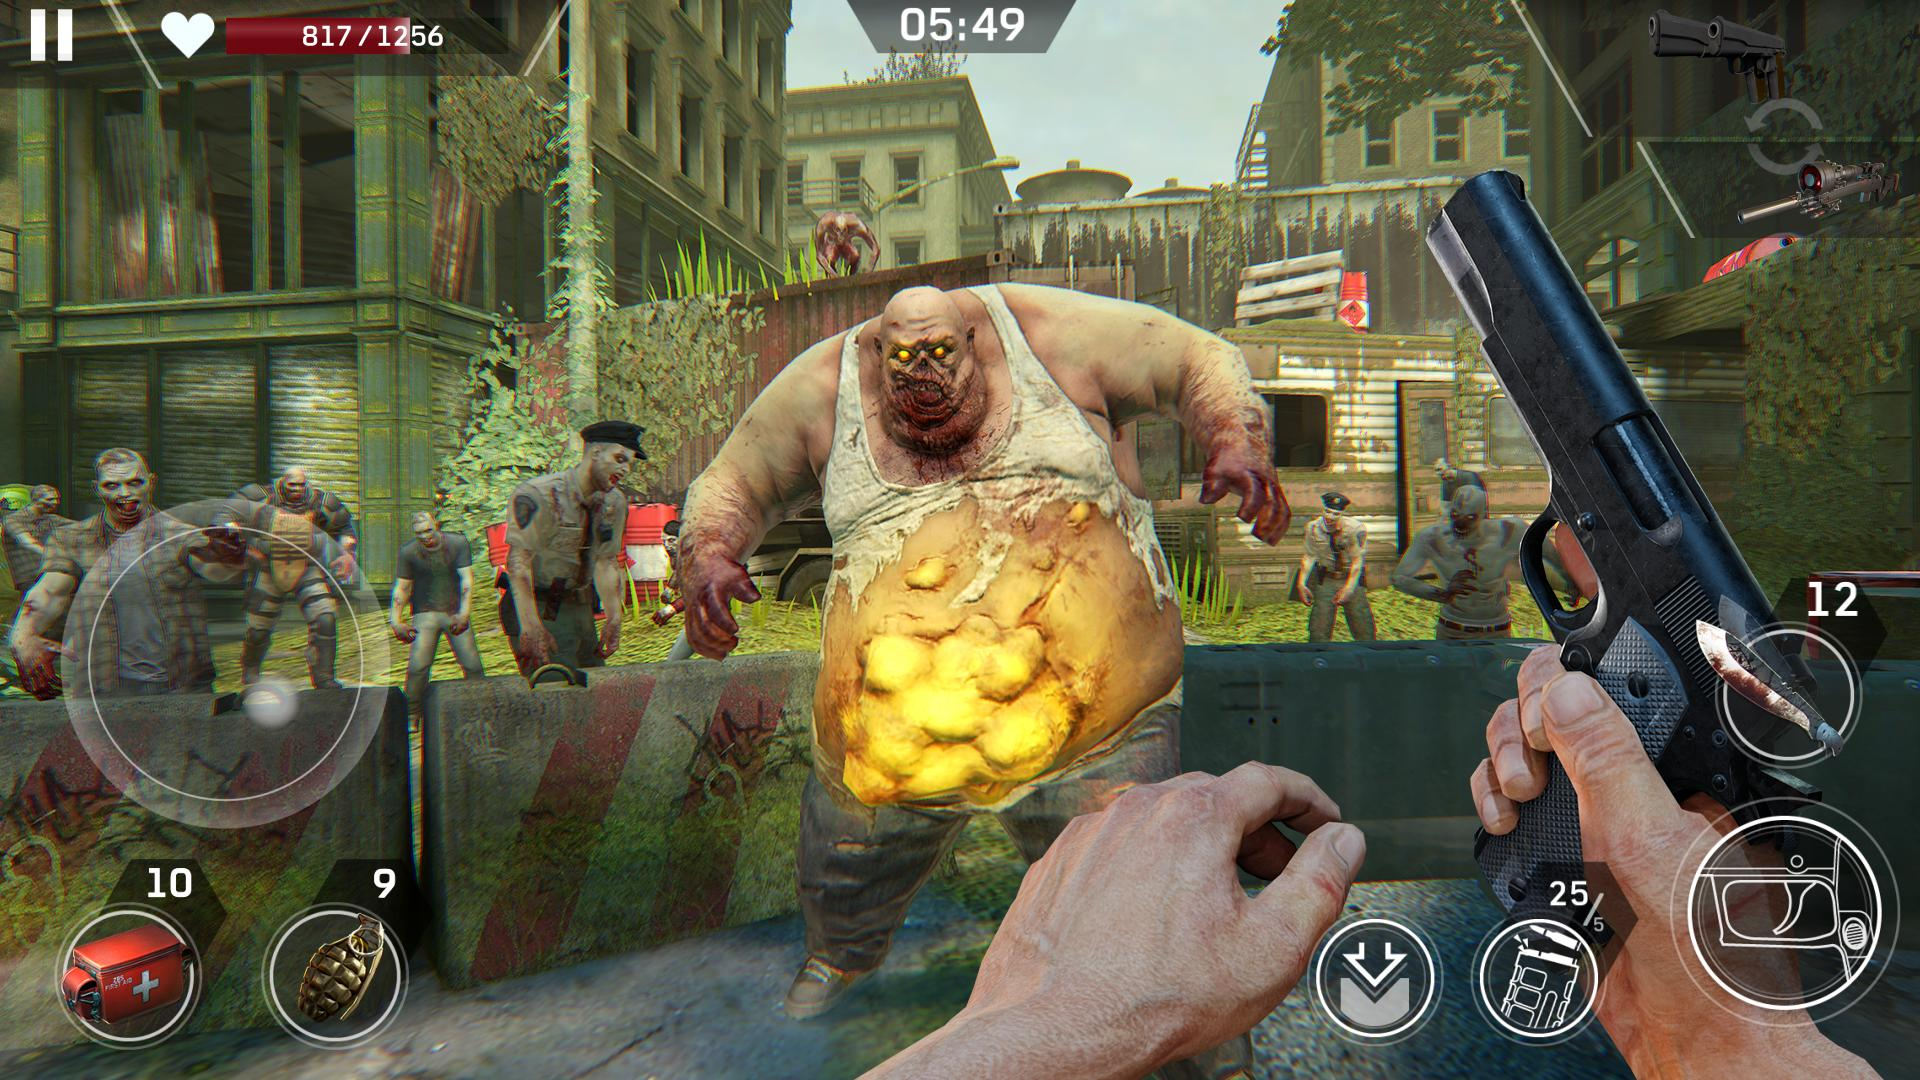 Left to Survive Zombie Survival PvP Shooter 4.2.0 Screenshot 5